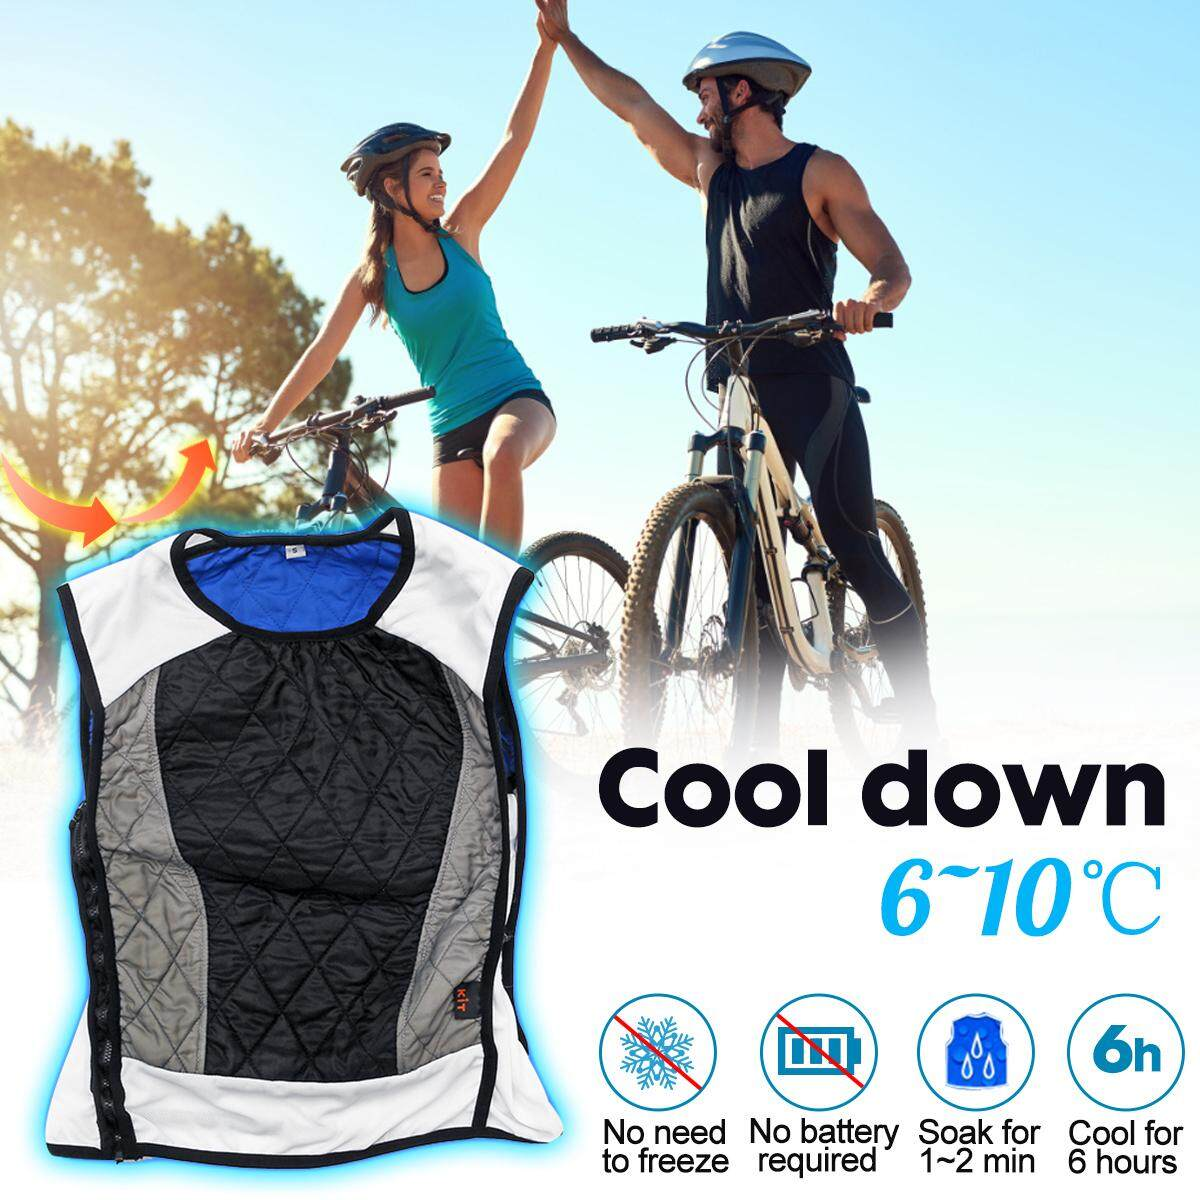 S/M/L/XL Outdoor Unisex Cooling Vest For Summer Rider Cool Down Riding Apparel